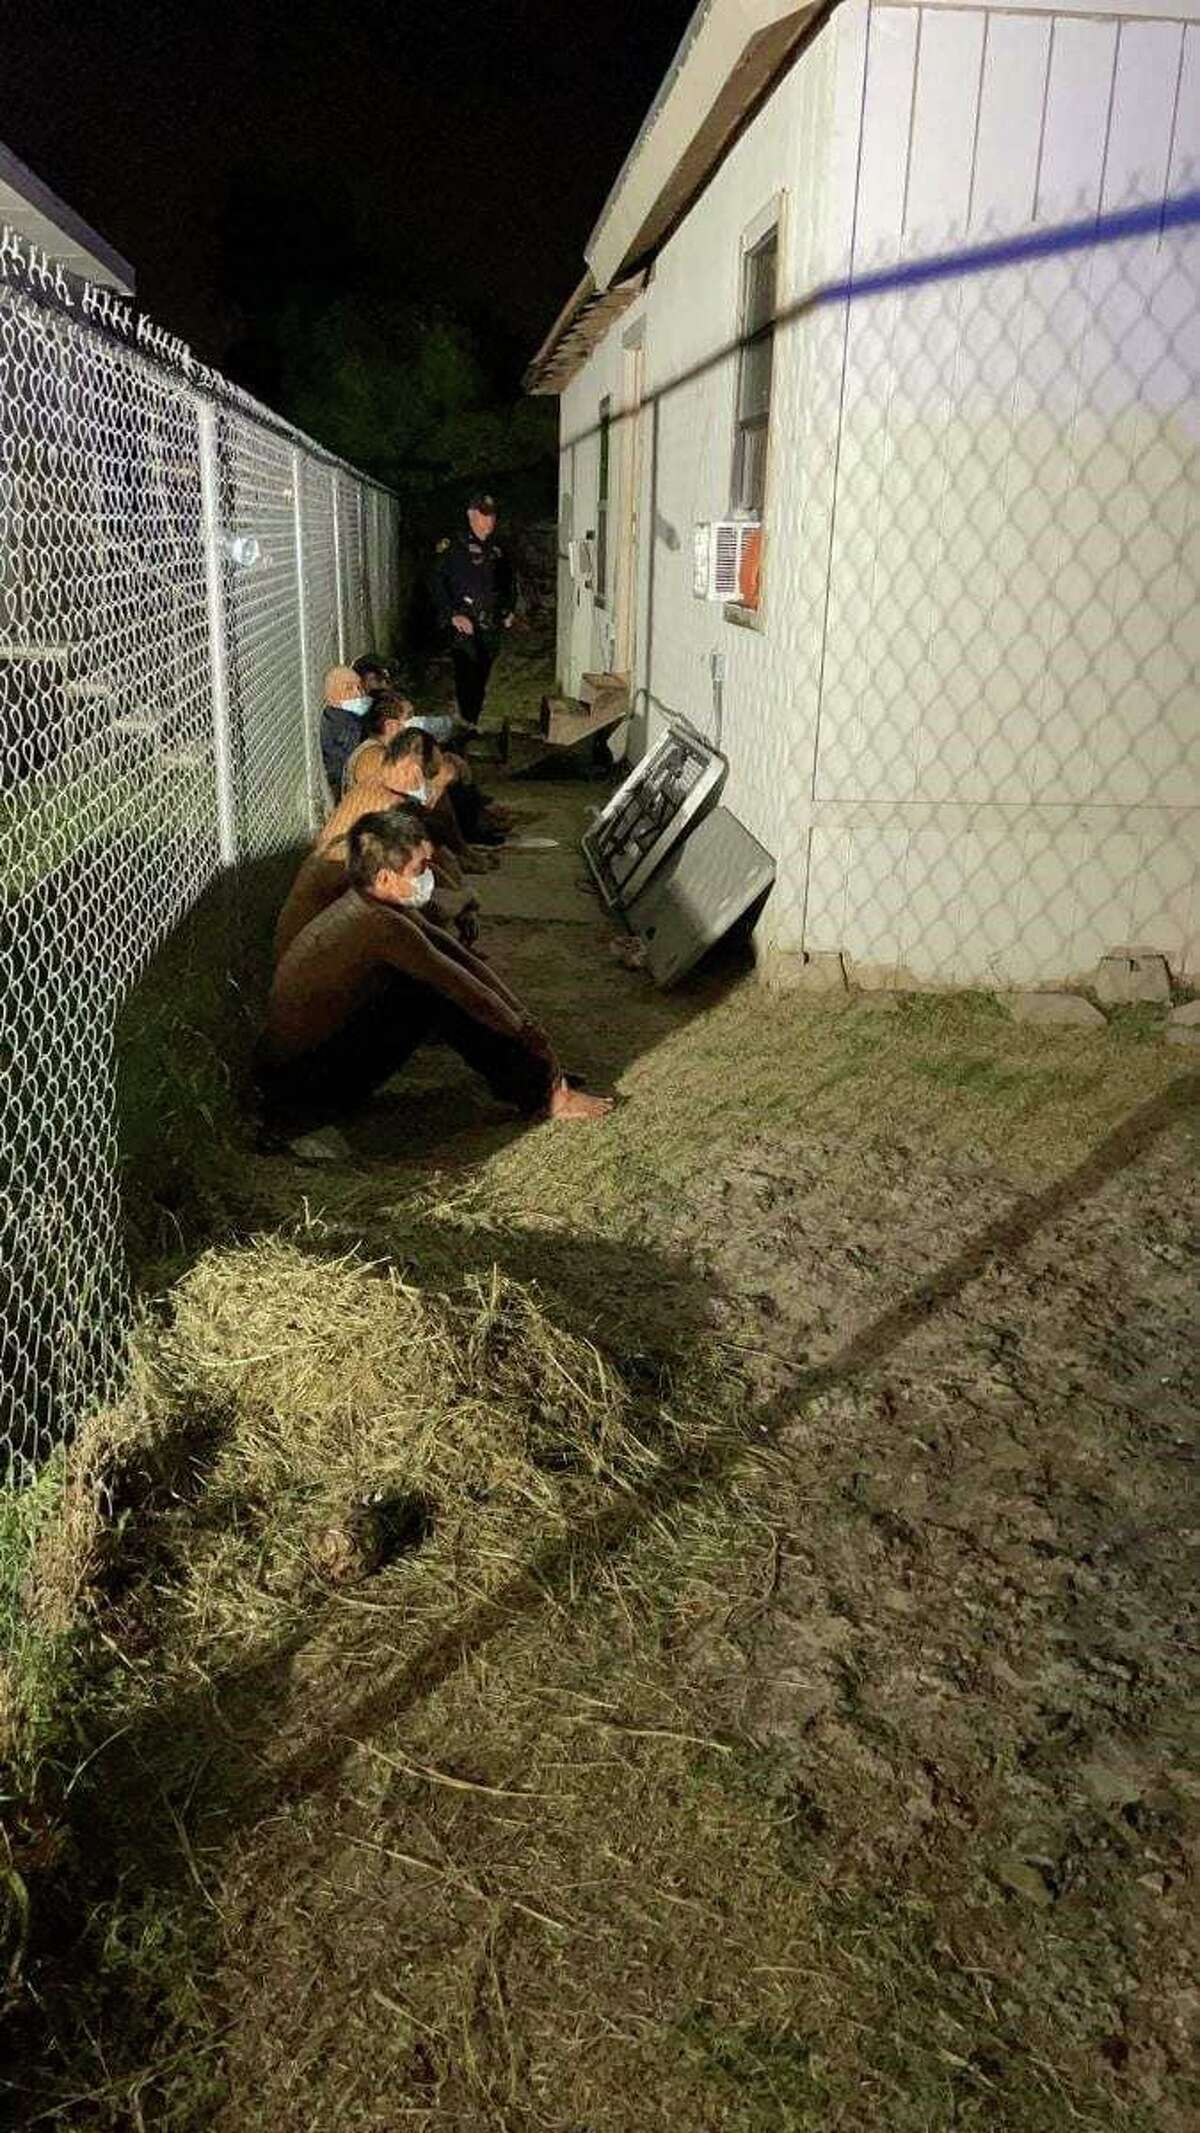 The U.S. Border Patrol stated that it partnered with the Laredo Police Department to discover migrants and narcotics in a south Laredo stash house on Wednesday.